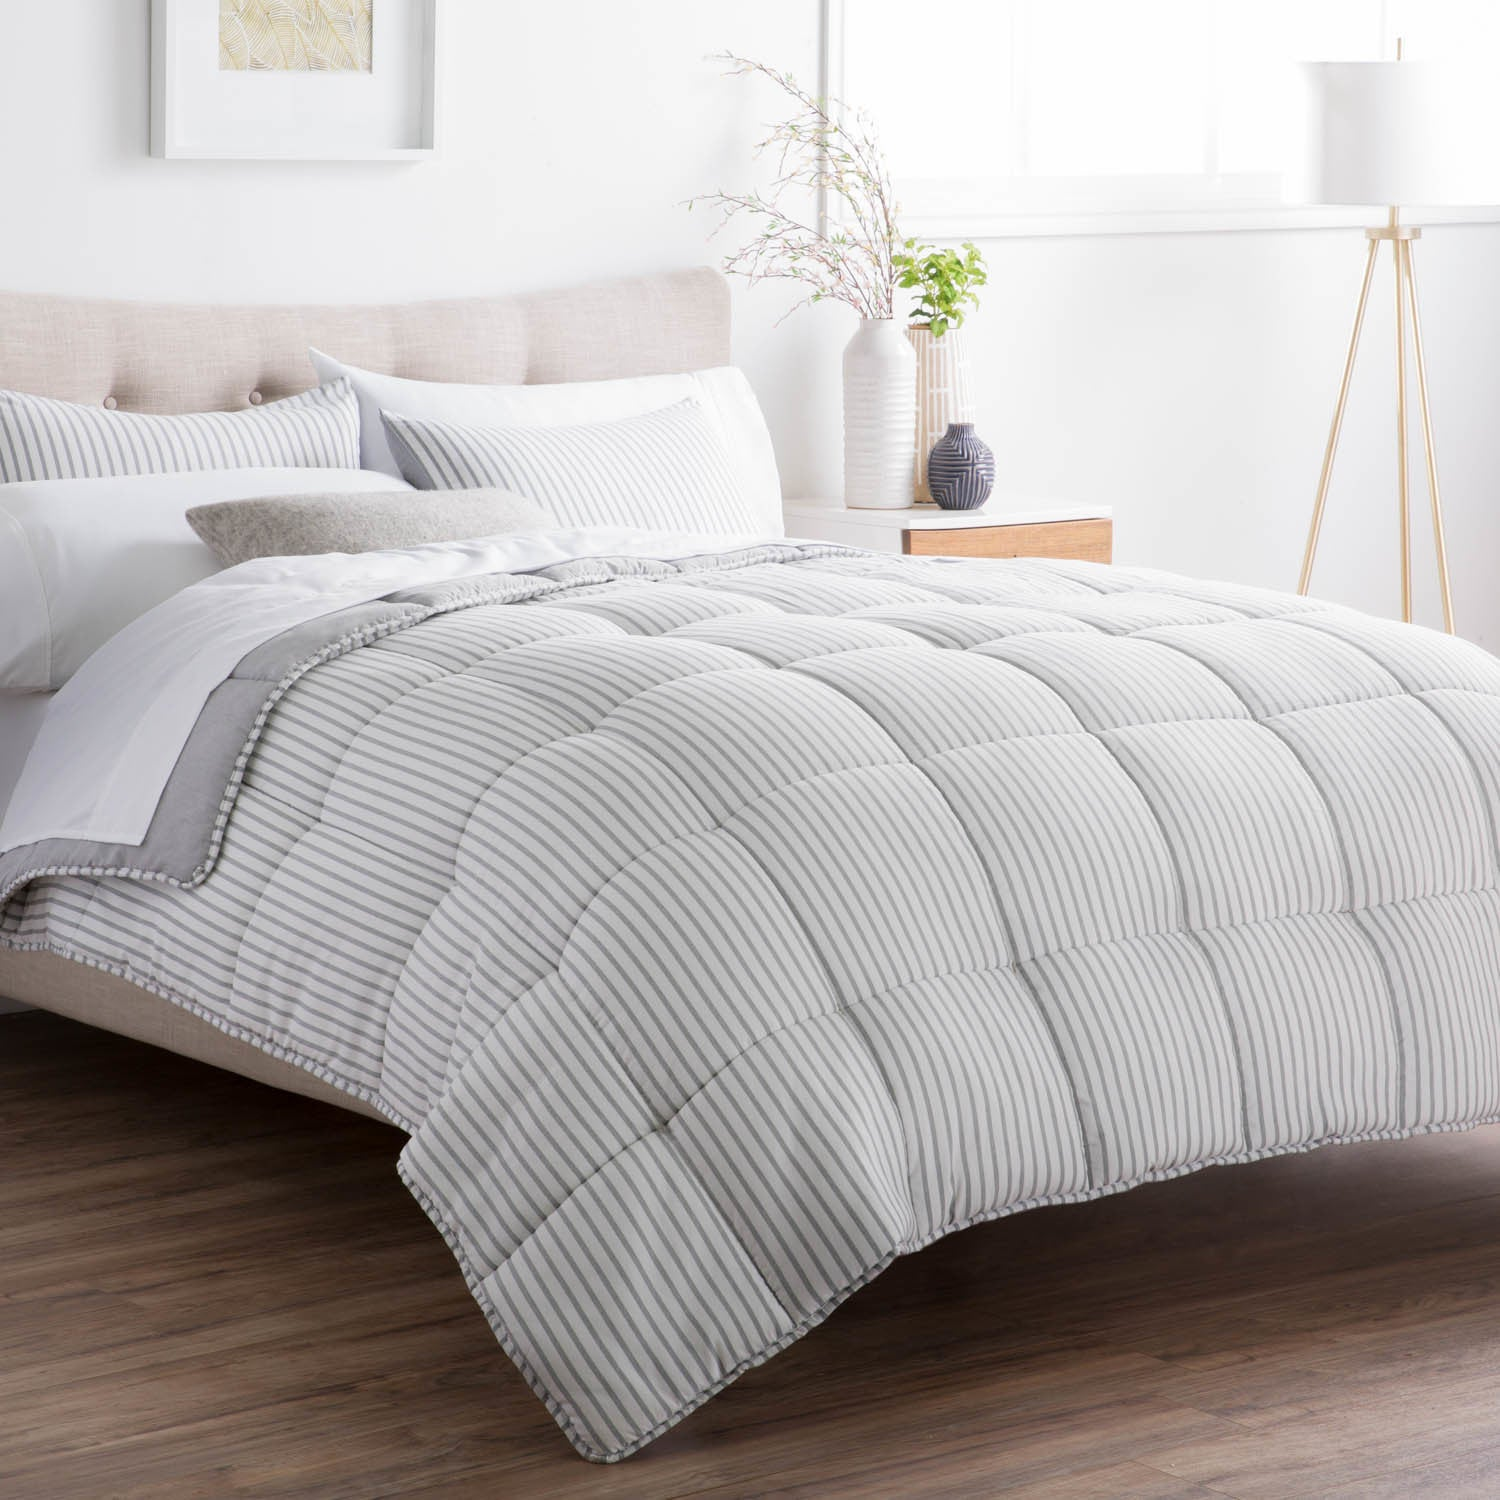 Superieur BROOKSIDE Striped Reversible Chambray Down Alternative Comforter Set (More  Options Available)